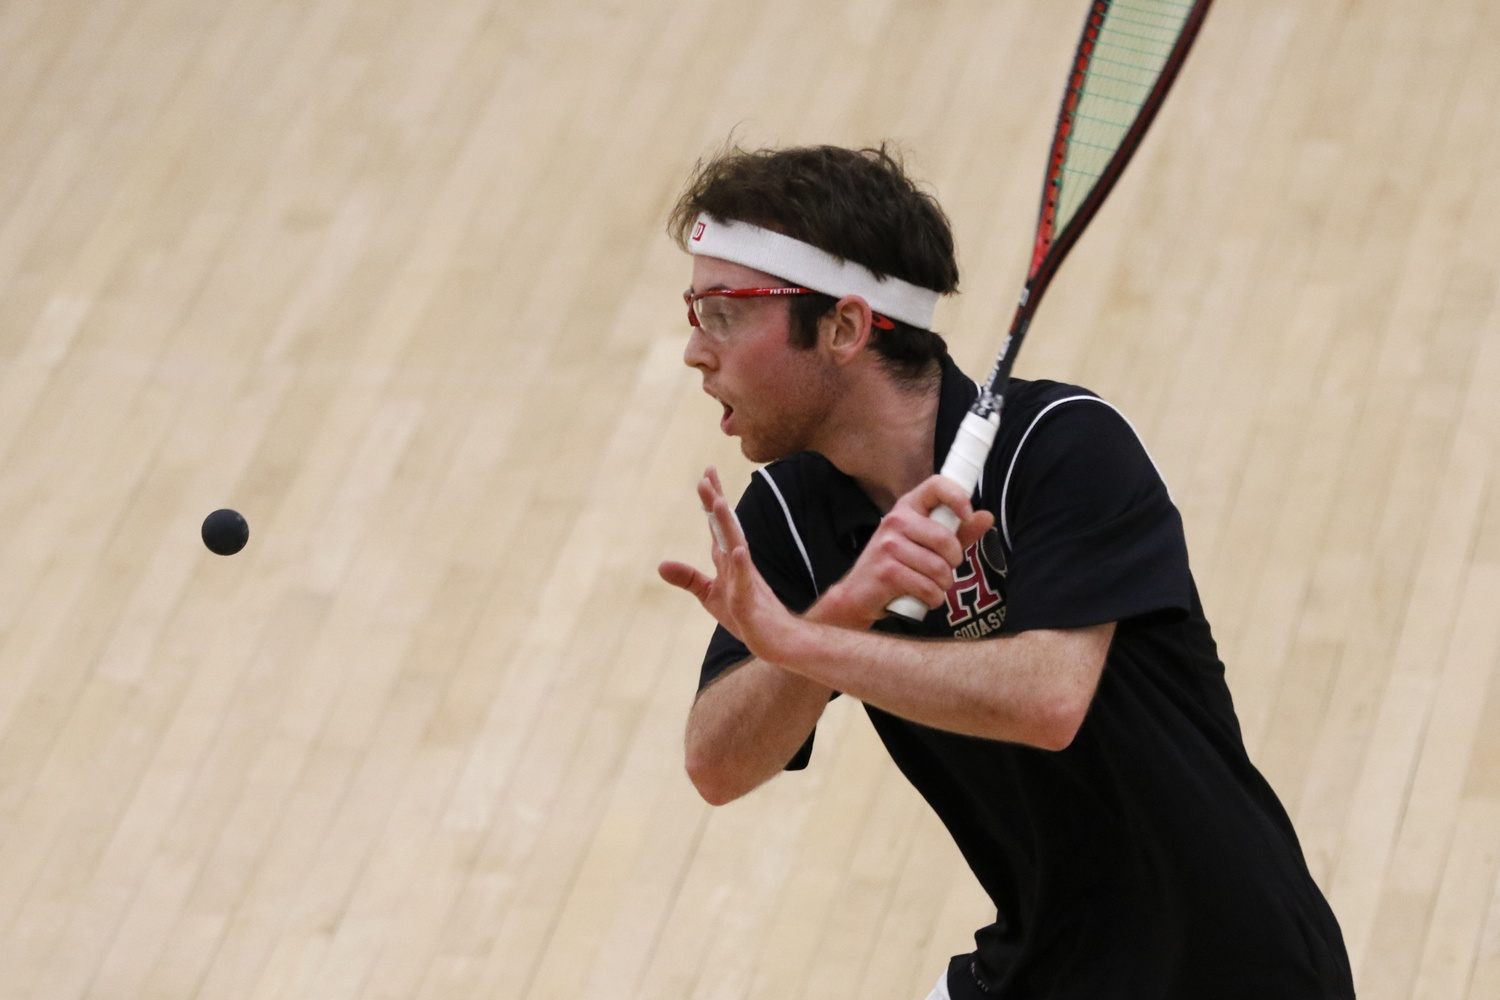 The men's Squash team has finished second in the nation in both of the past two seasons.